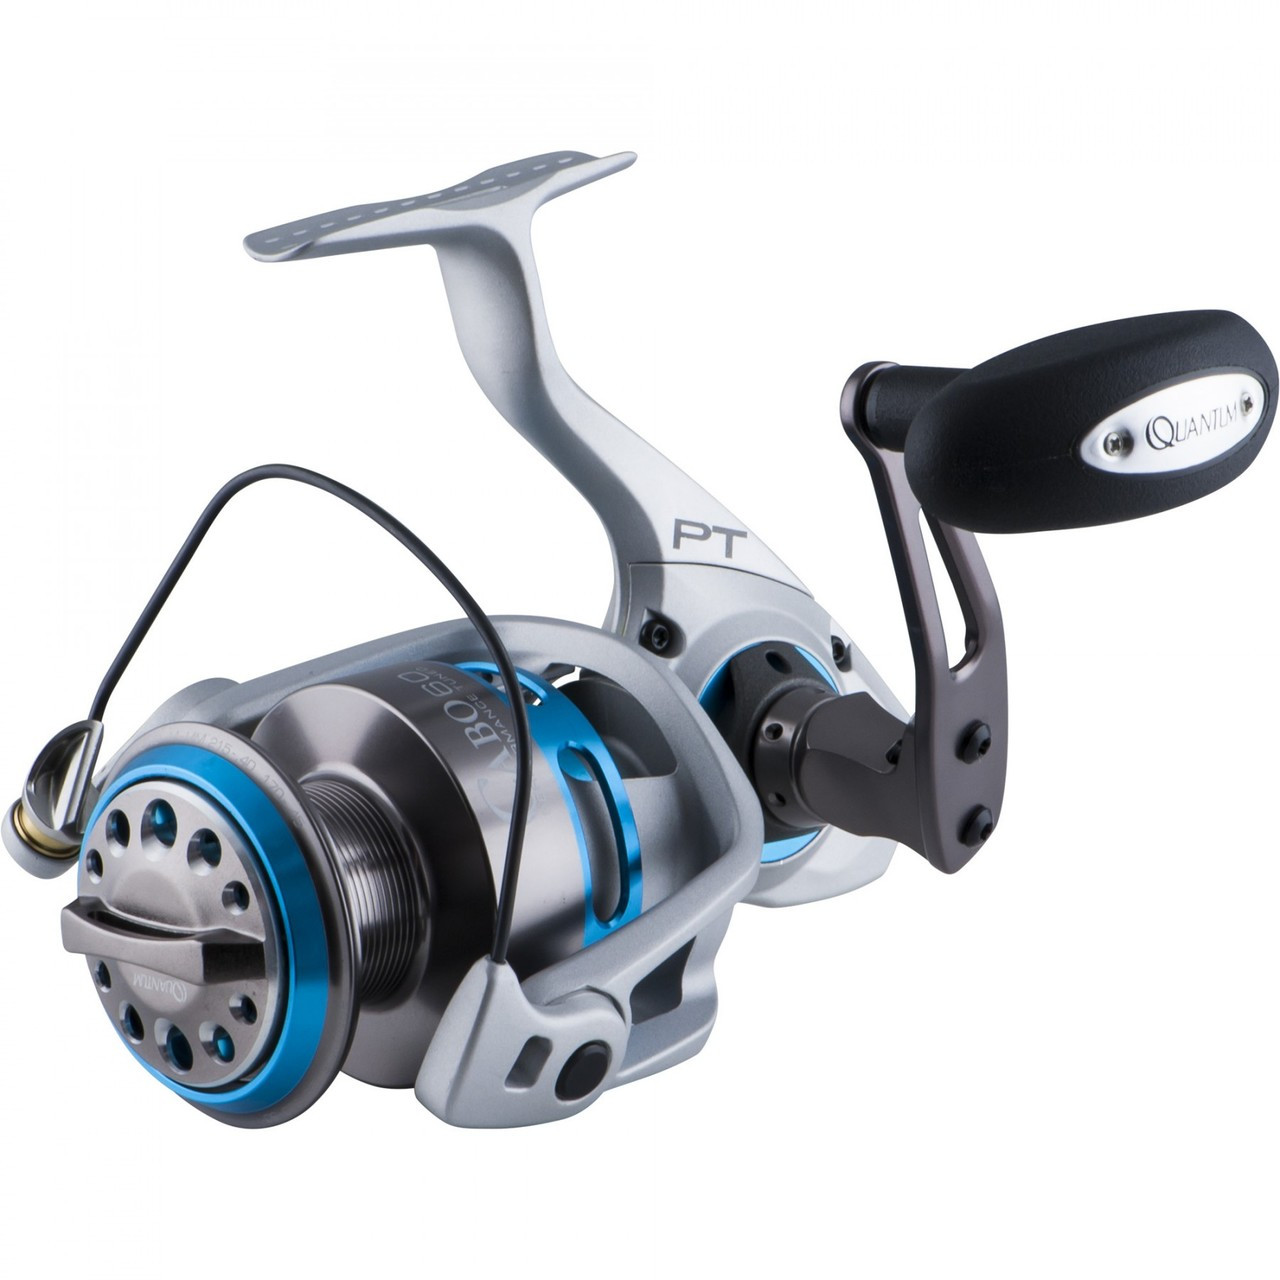 Quantum cabo pt spinning reel for Quantum fishing reel